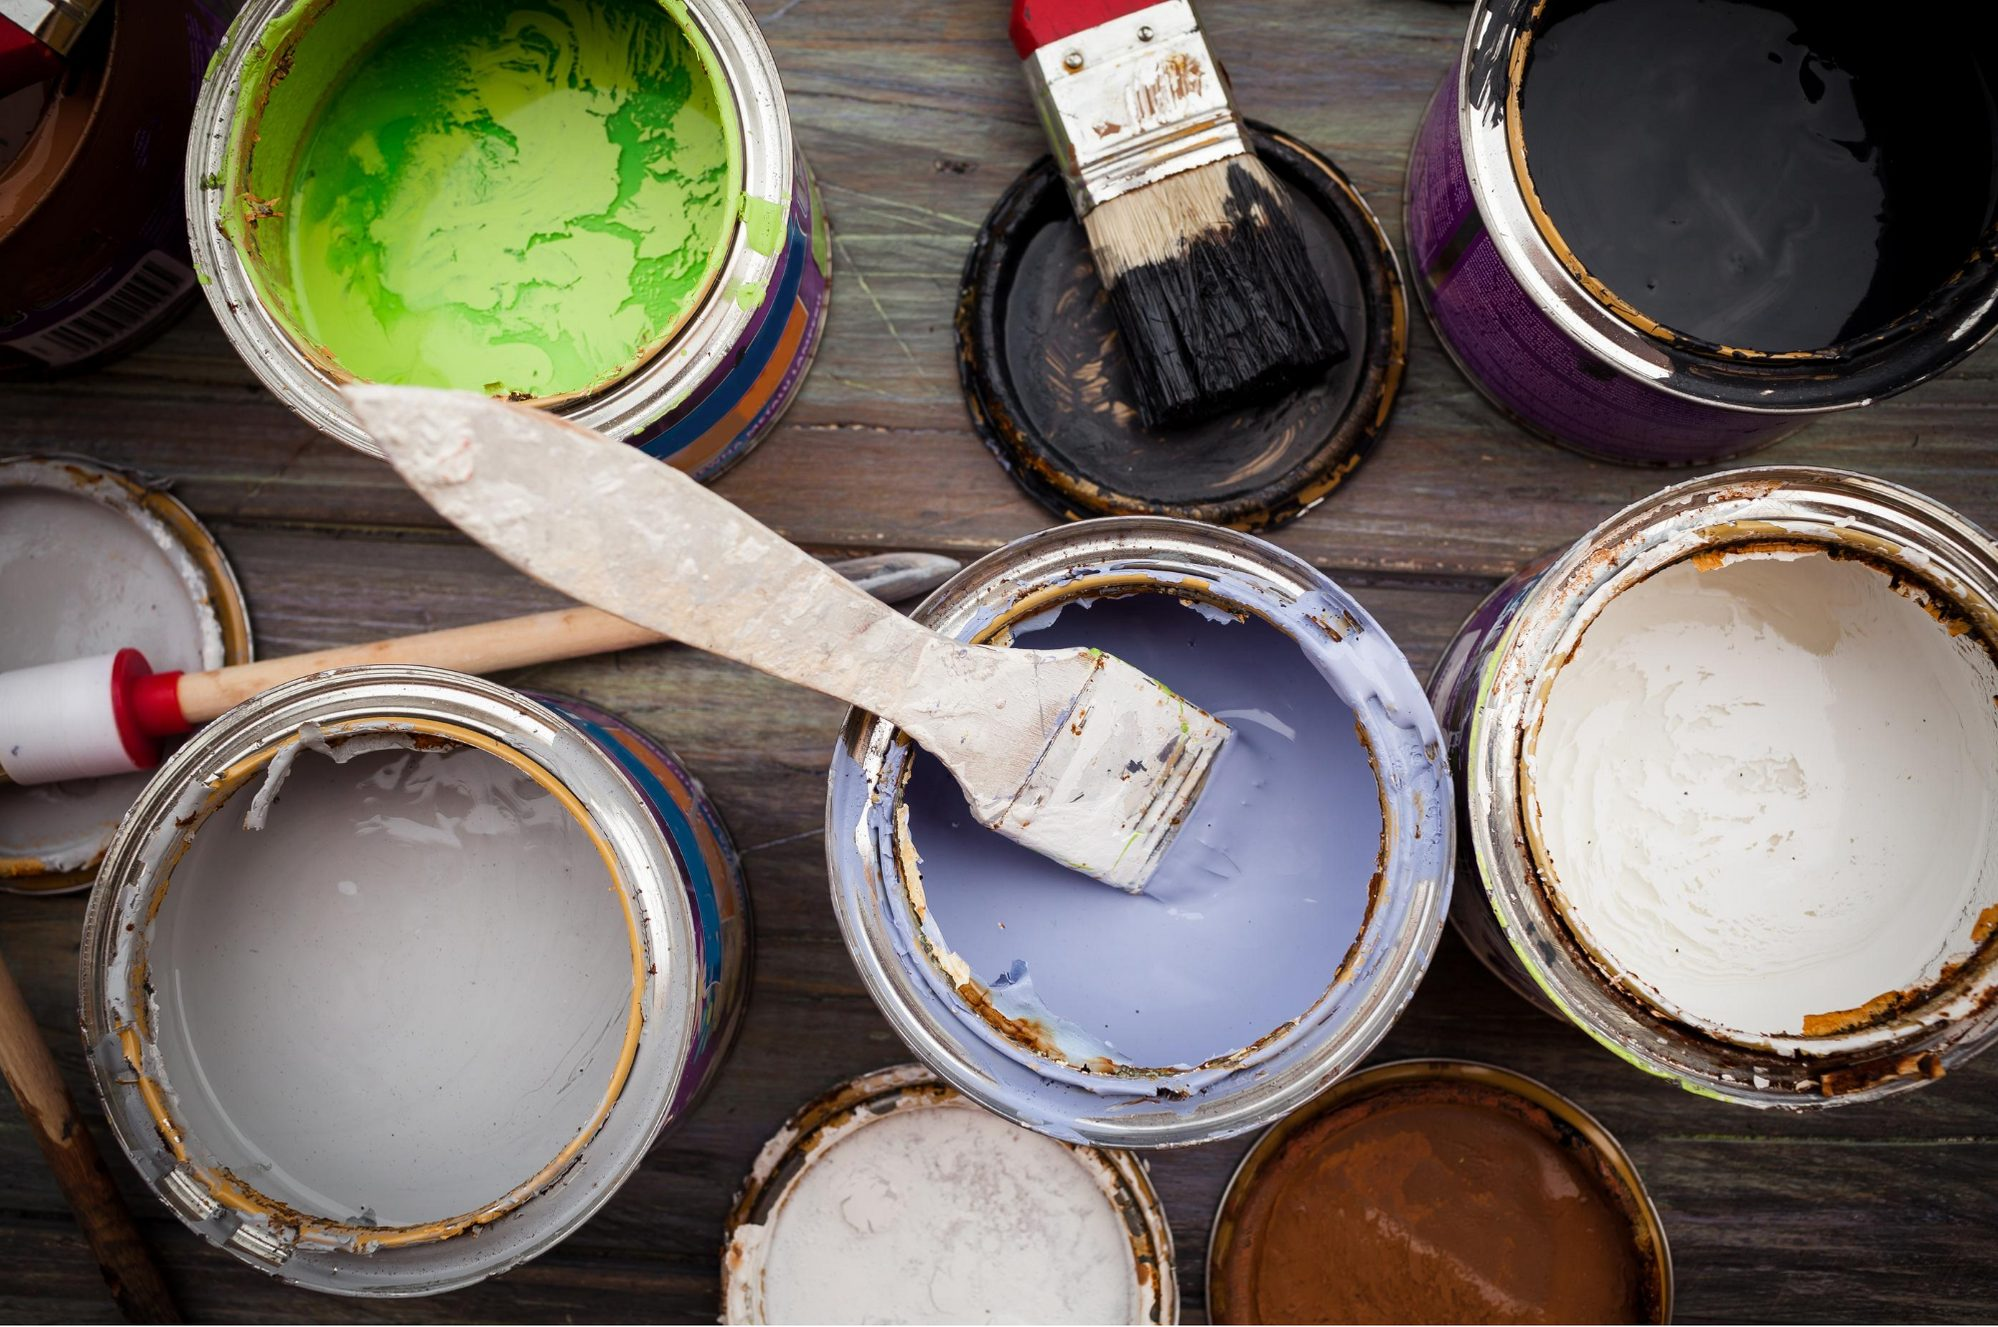 paint cans and paint brushes